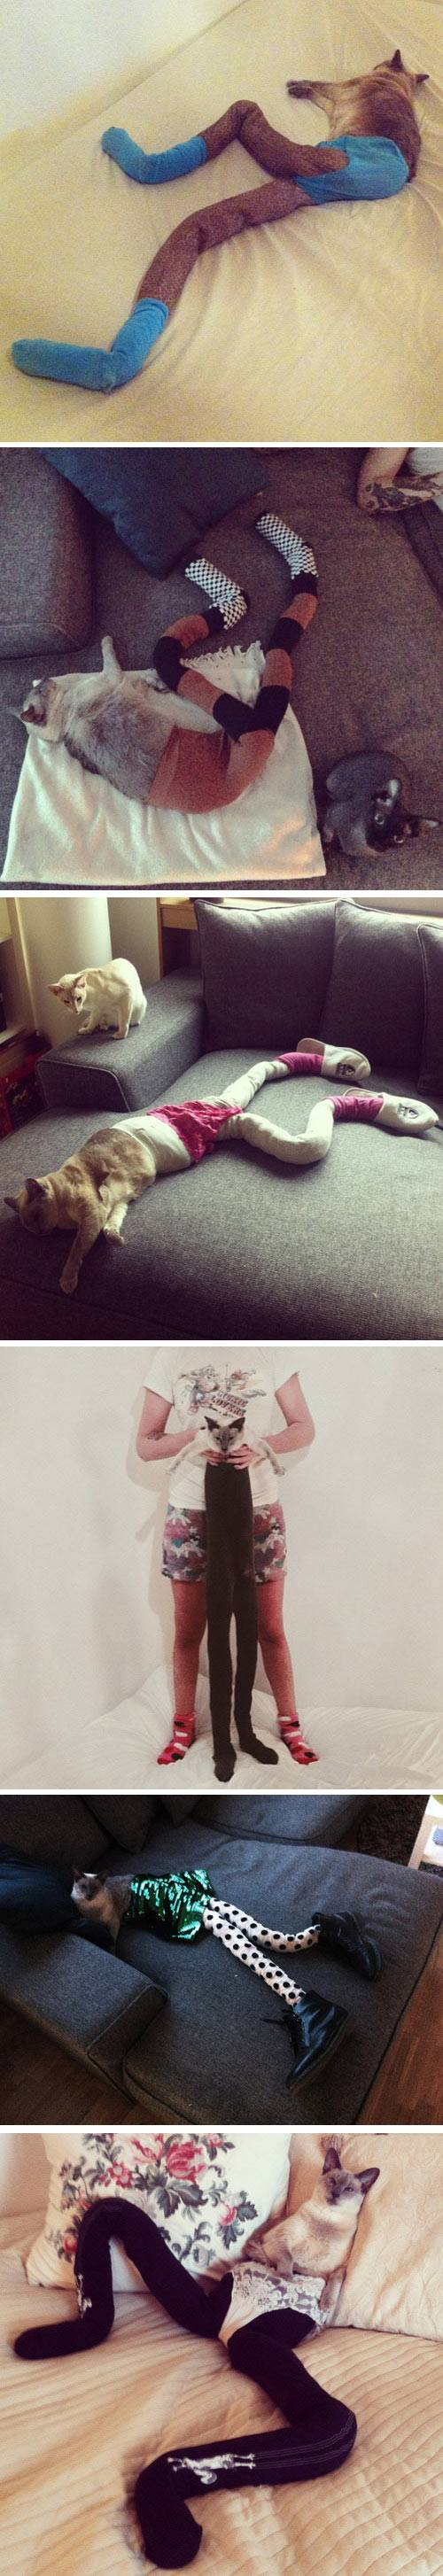 Just a cats wearing tights.